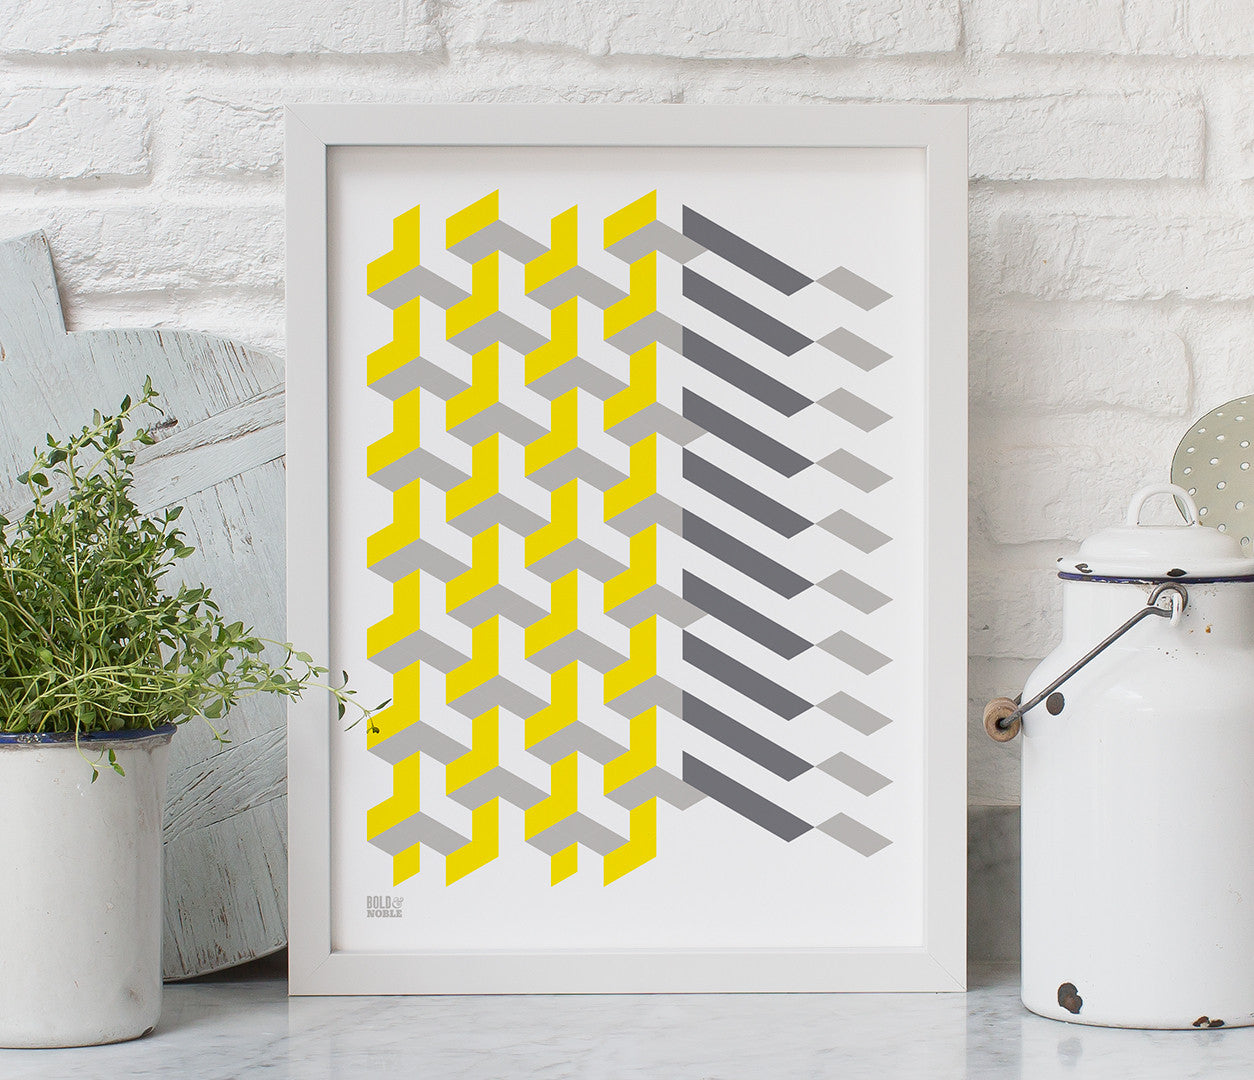 Geometric Polygon Art Print Design, Modern Print Designs for the Home